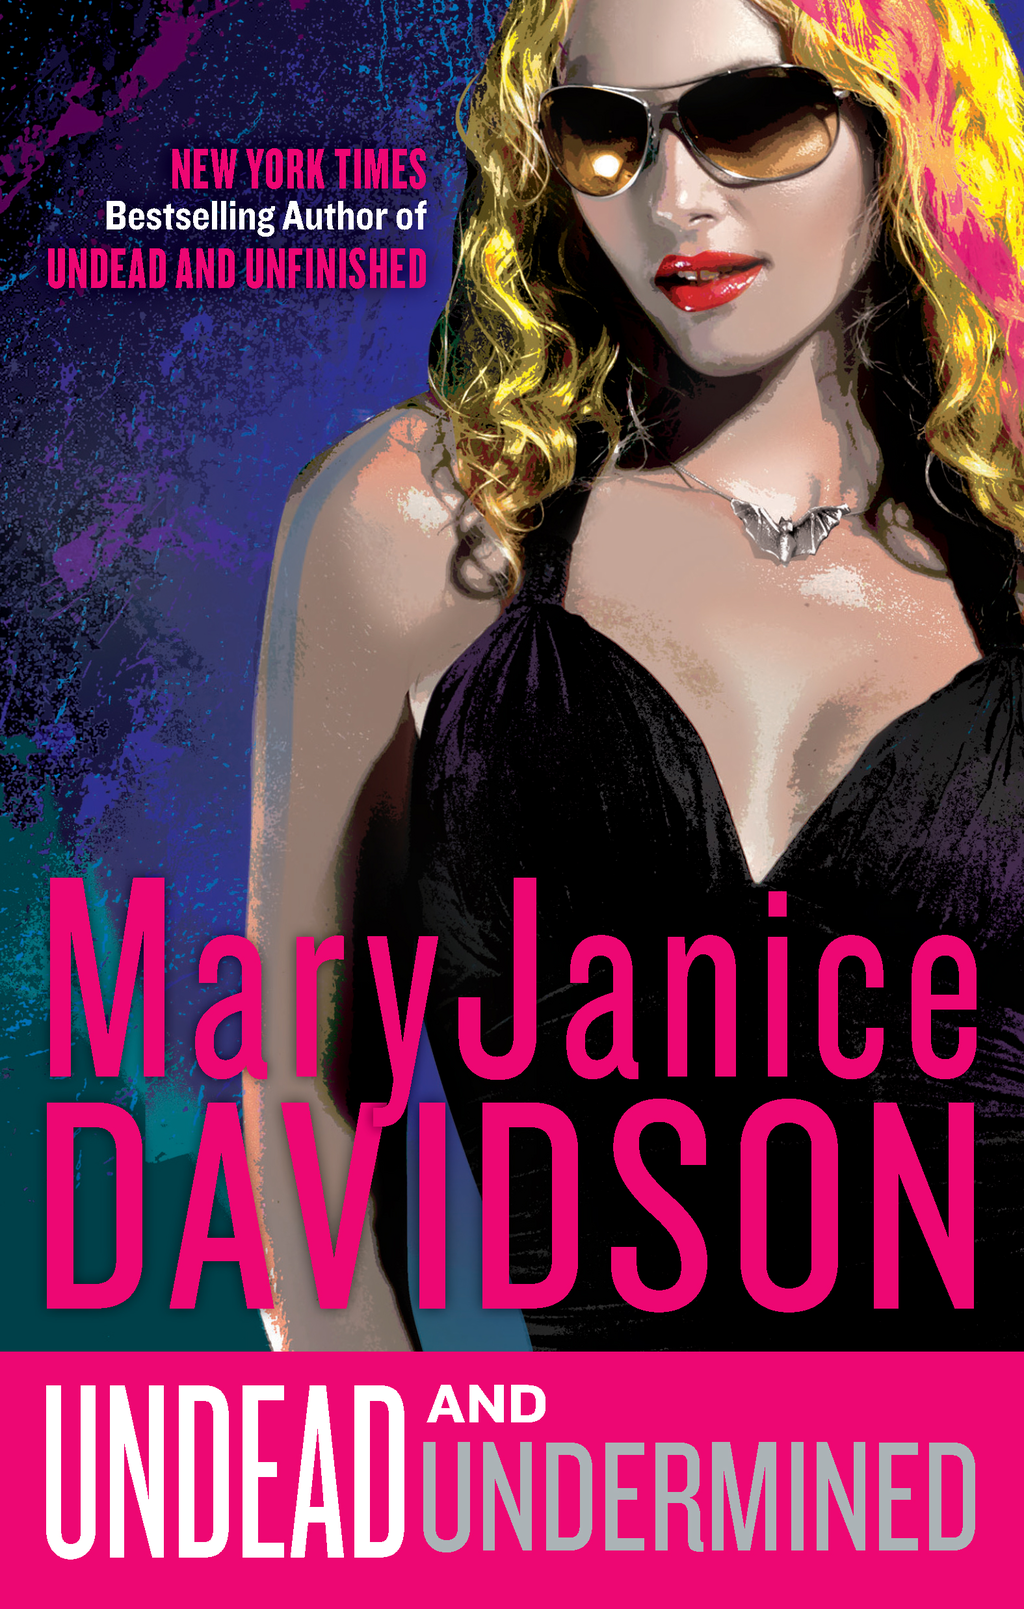 Undead and Undermined By: MaryJanice Davidson